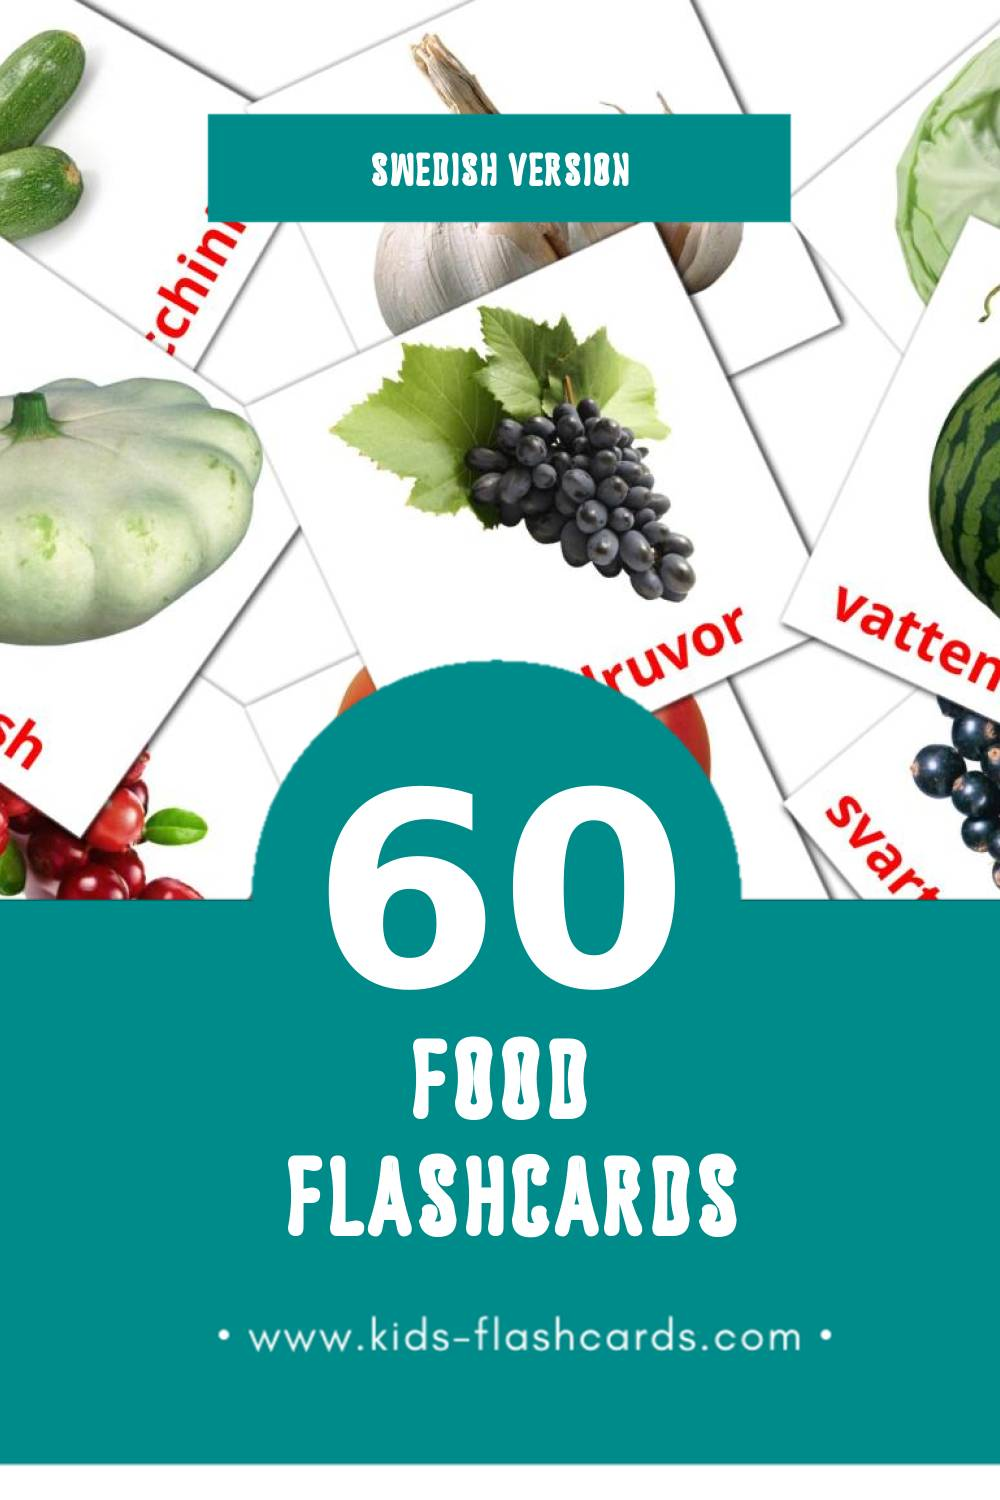 Visual Mat Flashcards for Toddlers (60 cards in Swedish)